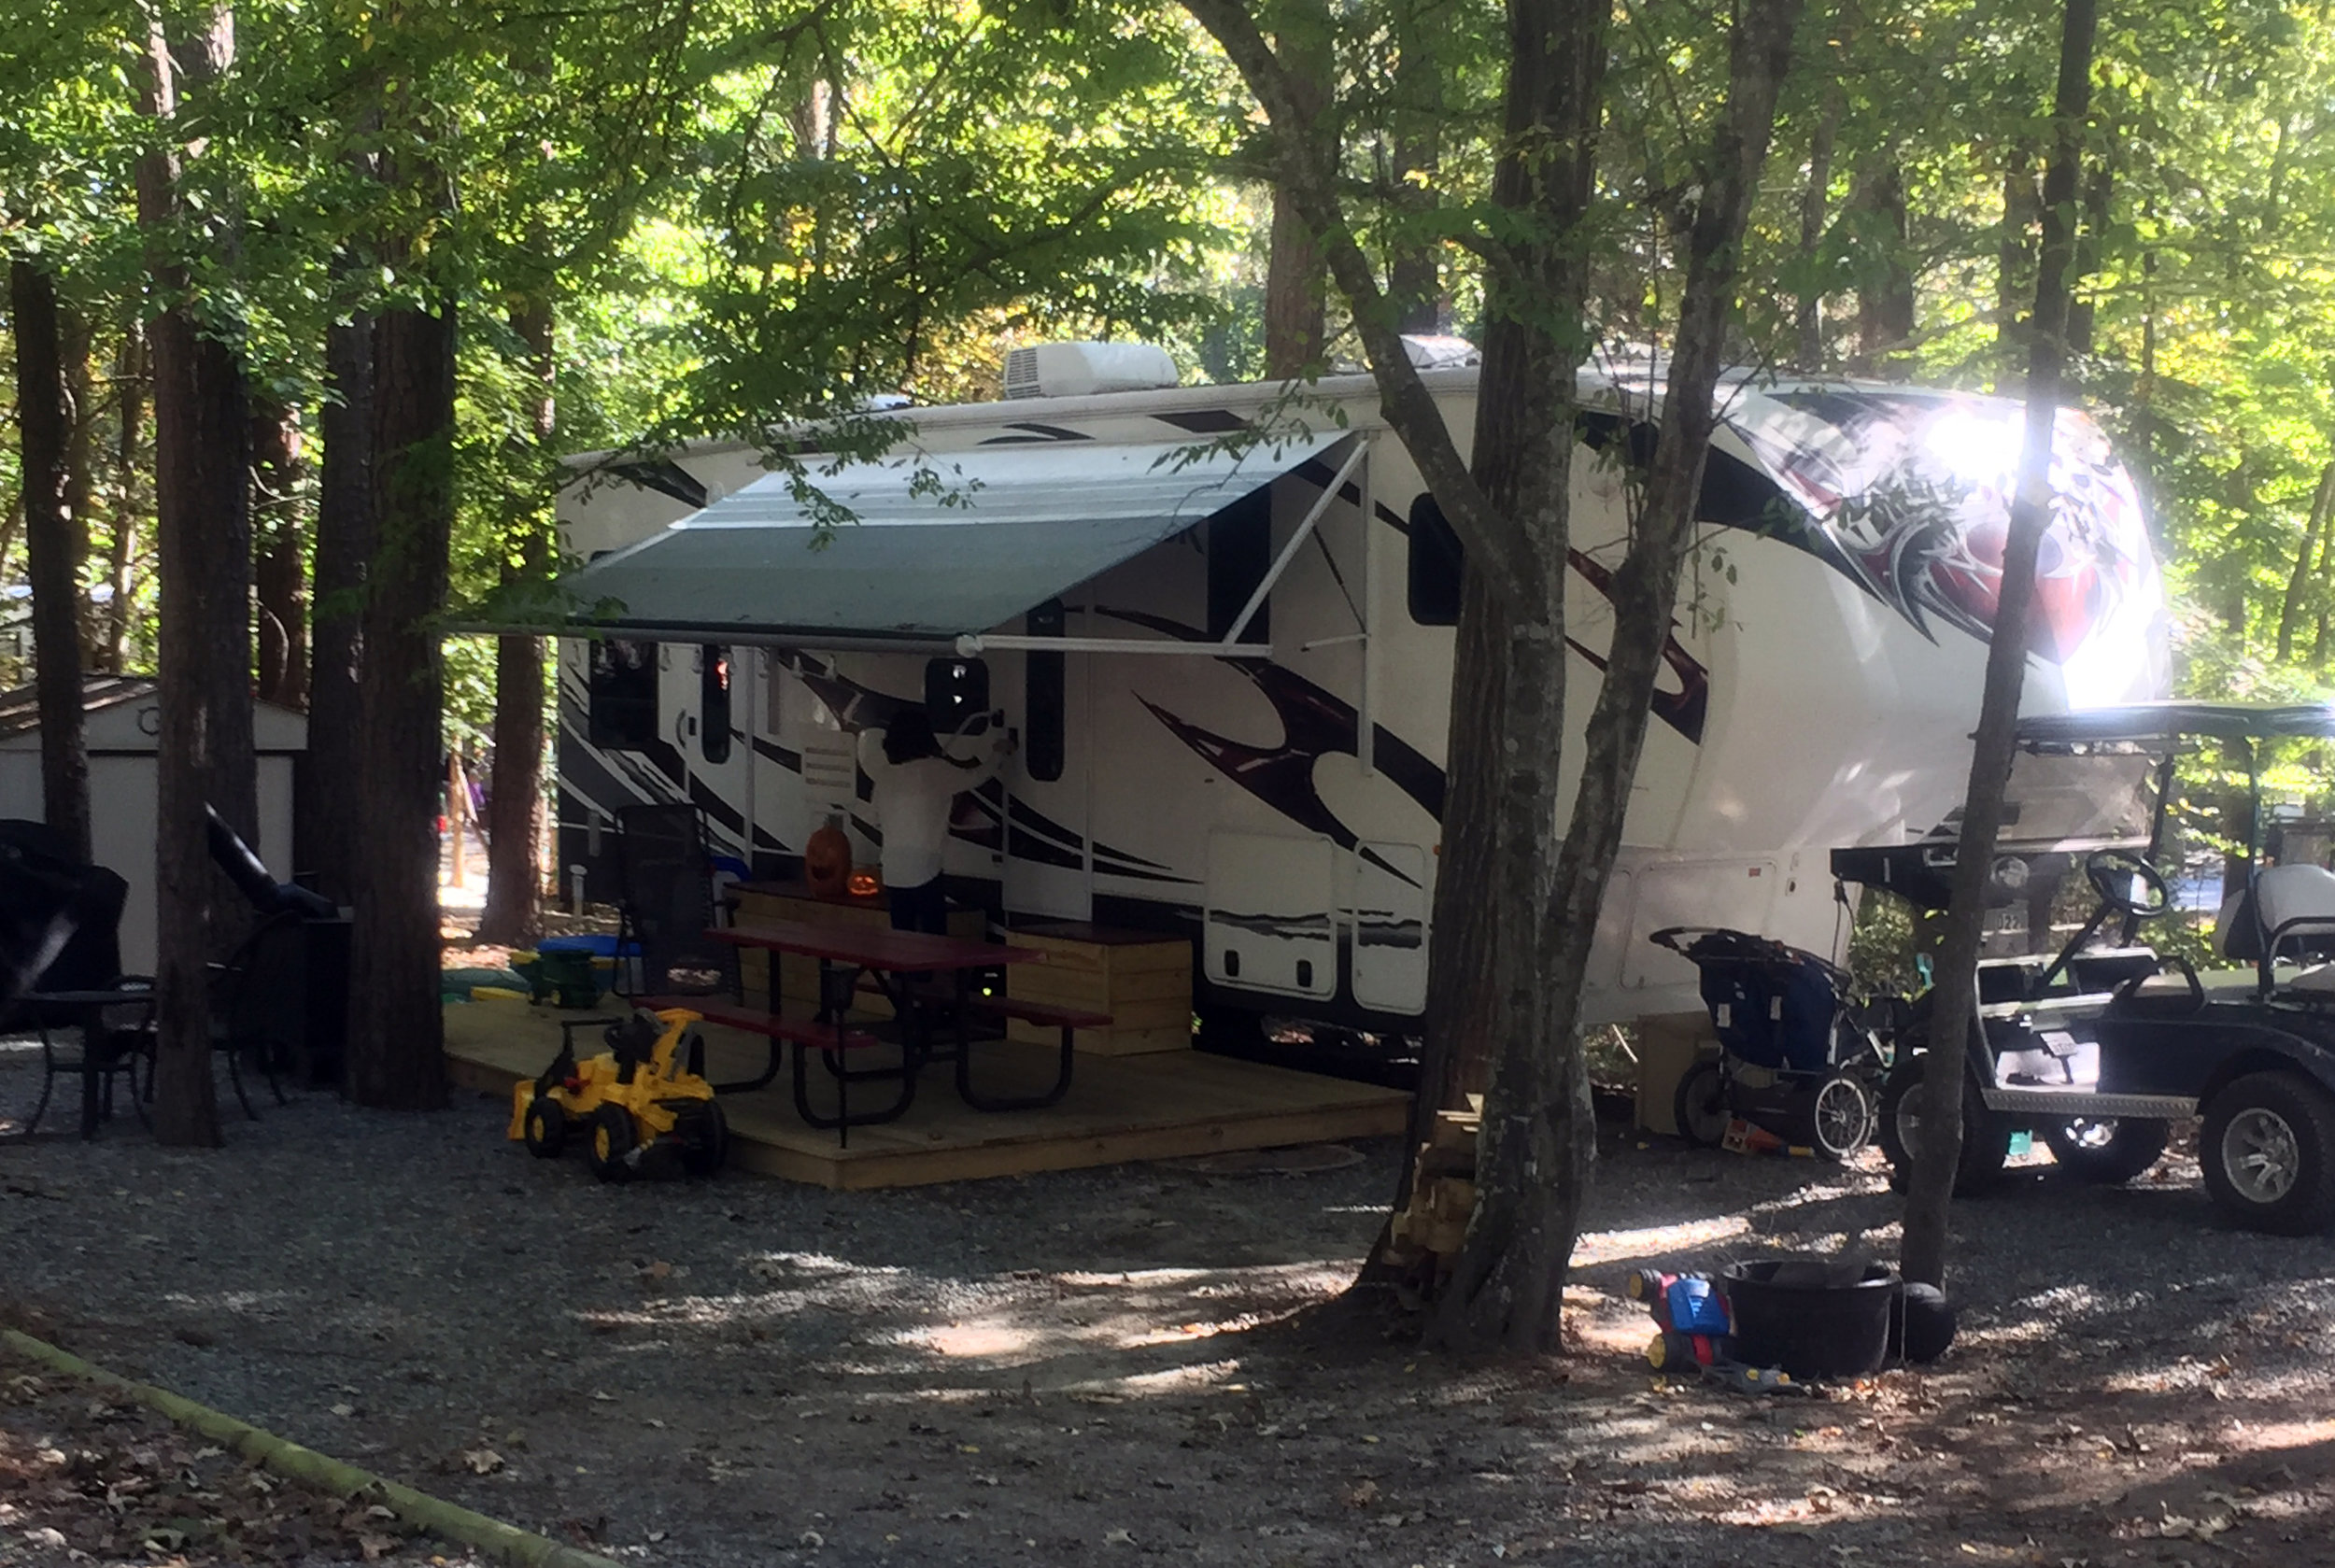 The Brinkley's camper at Forest Lake Campground.